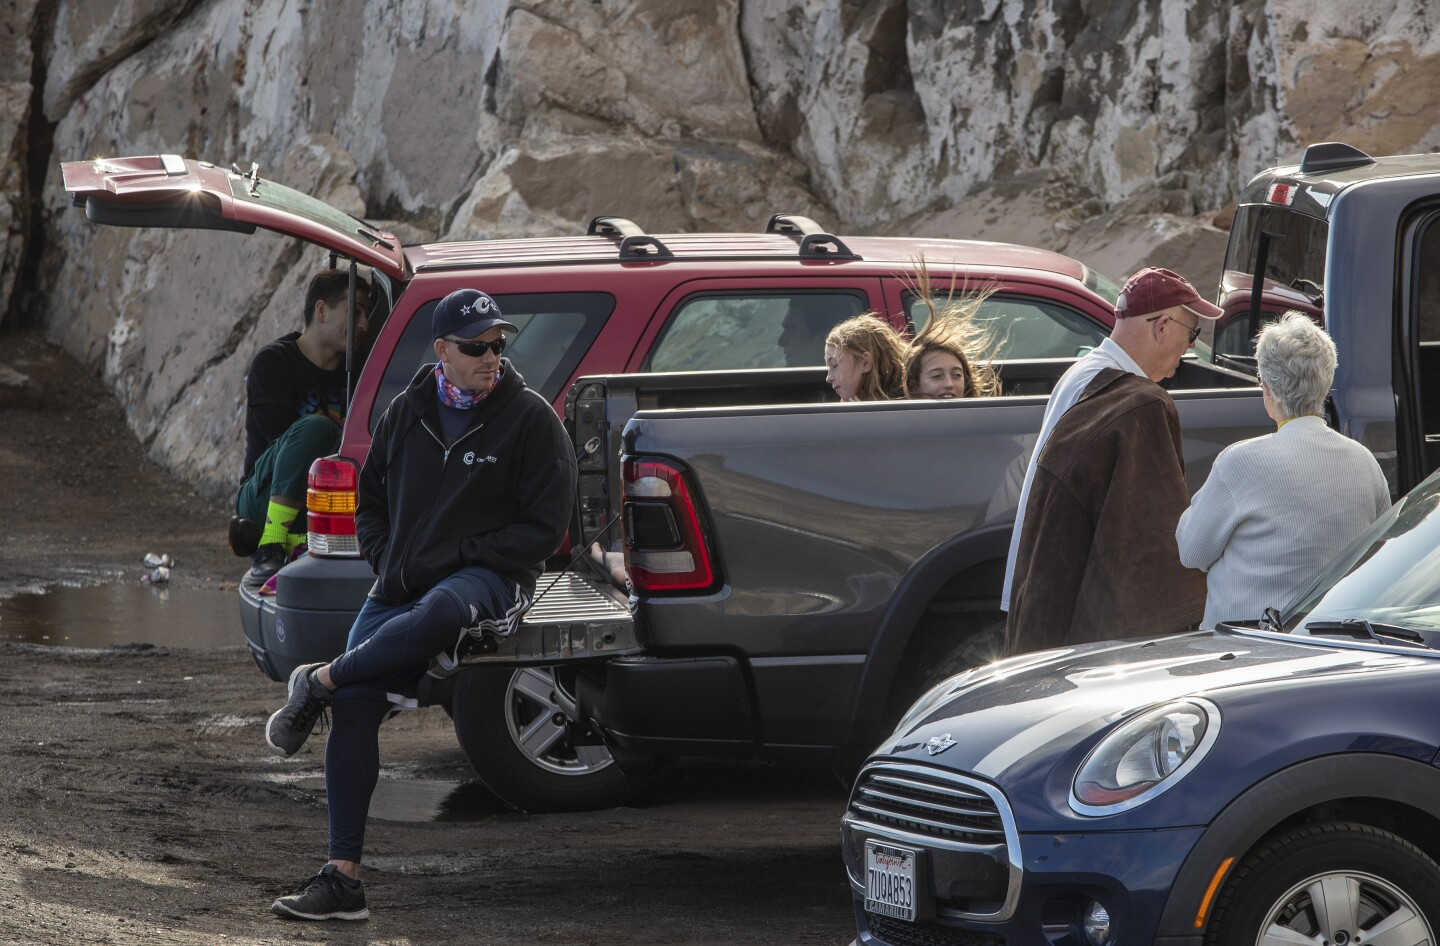 POINT MUGU, CA - APRIL 11: Visitors to Pt. Mugu ignore no parking as well as coronavirus and social distancing restrictions on Saturday, April 11, 2020 in Point Mugu, CA. (Brian van der Brug / Los Angeles Times)